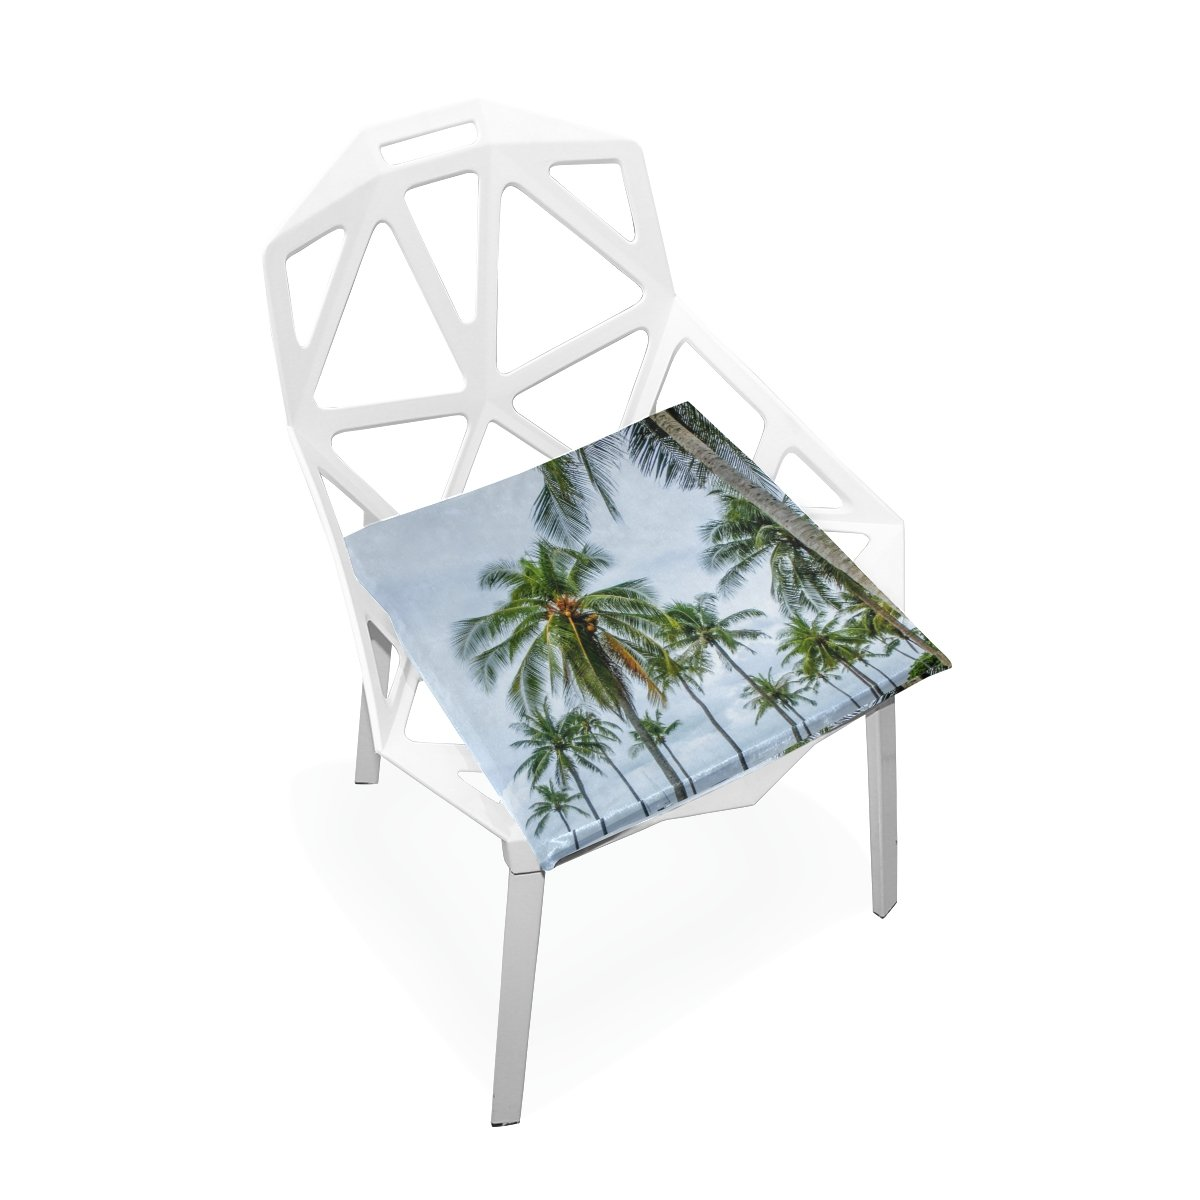 TSWEETHOME Comfort Memory Foam Square Chair Cushion Seat Cushion with Thai Summer Landscape Chair Pads for Hardwood Floors Dining Chairs Office Chairs by TSWEETHOME